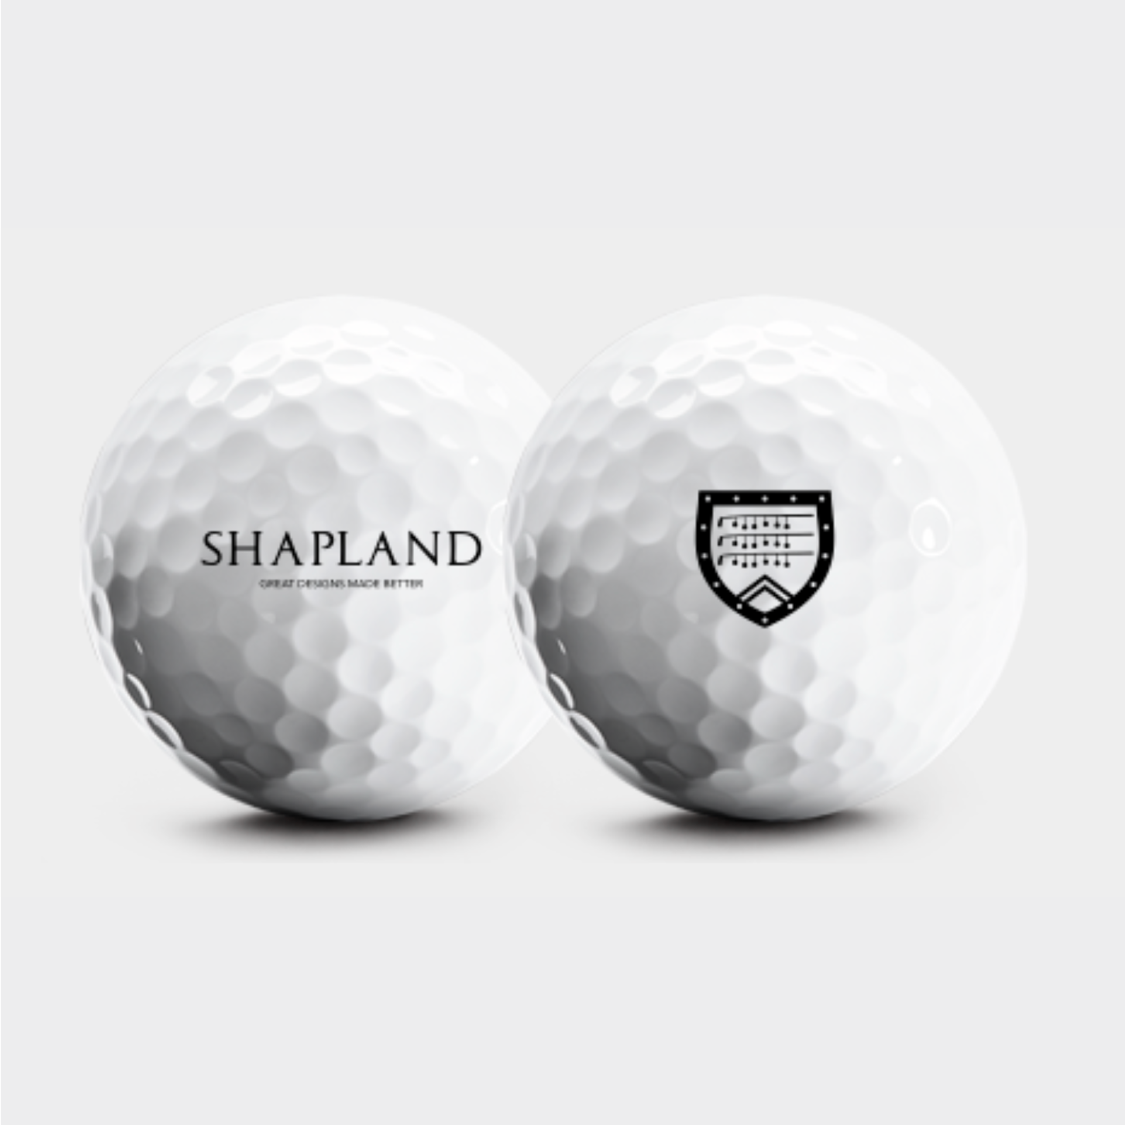 Shapland logo golf balls by Vice Golf